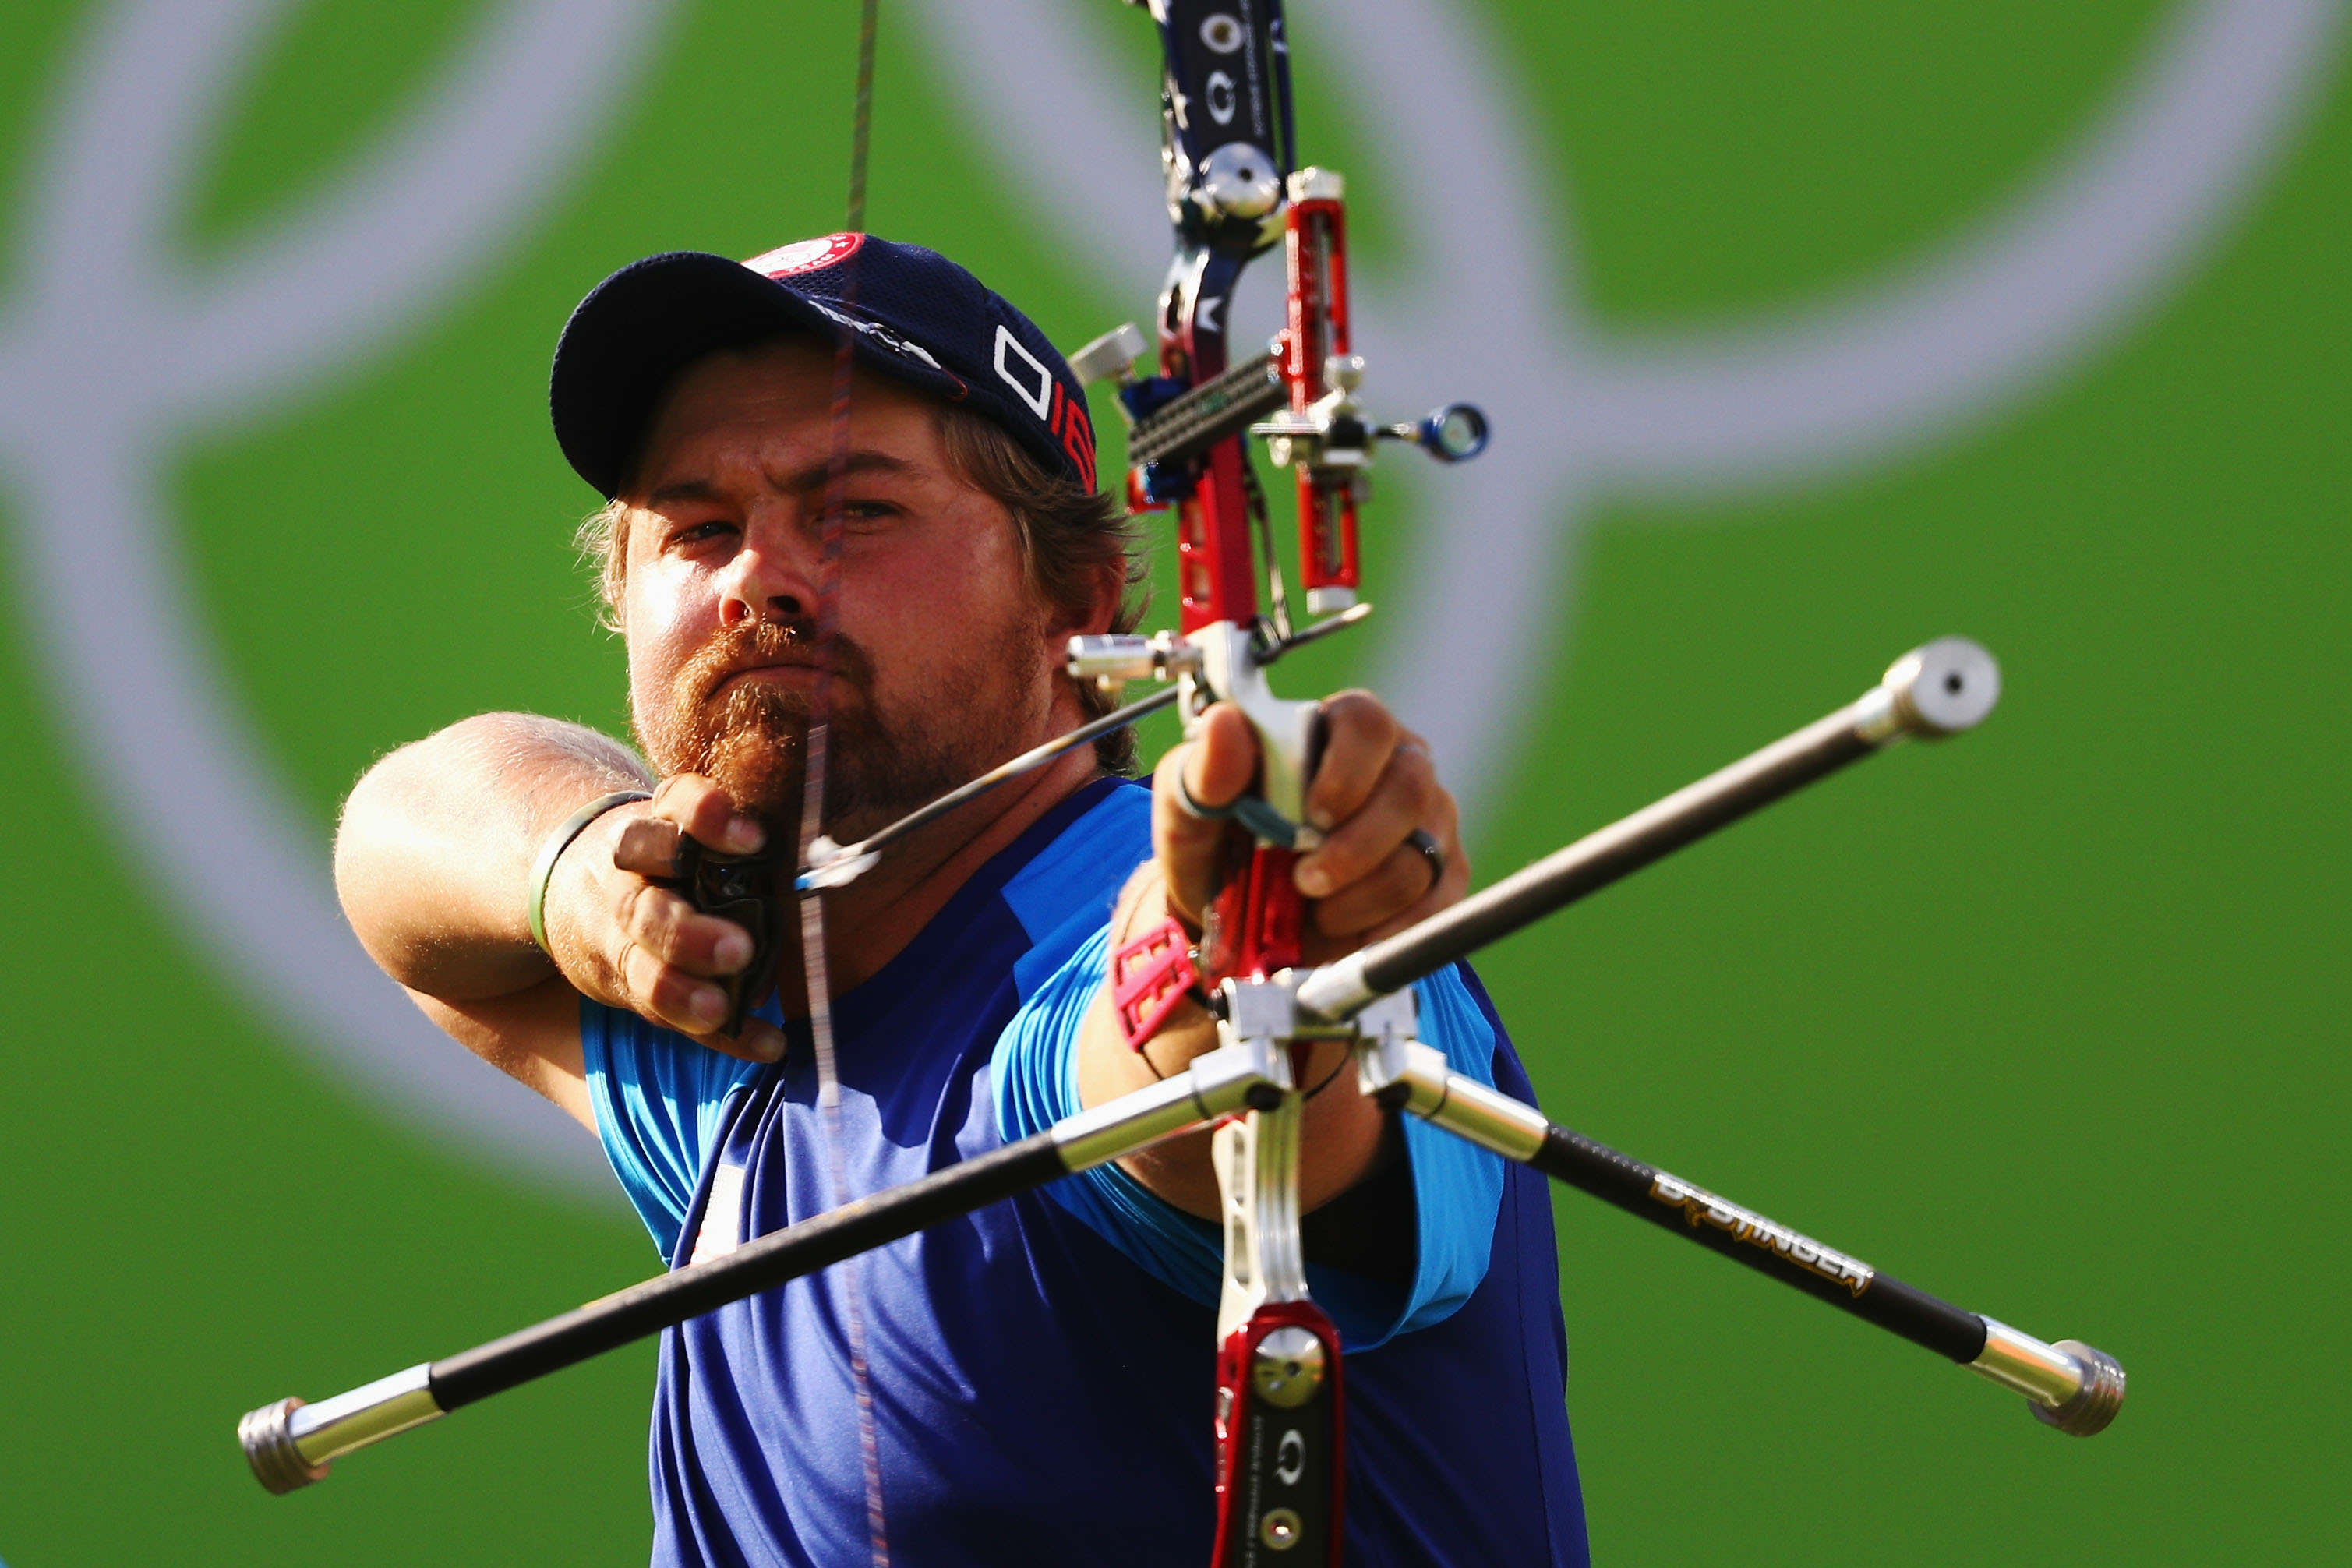 Leonardo DiCaprios Doppelganger Is Competing In Rio brady2